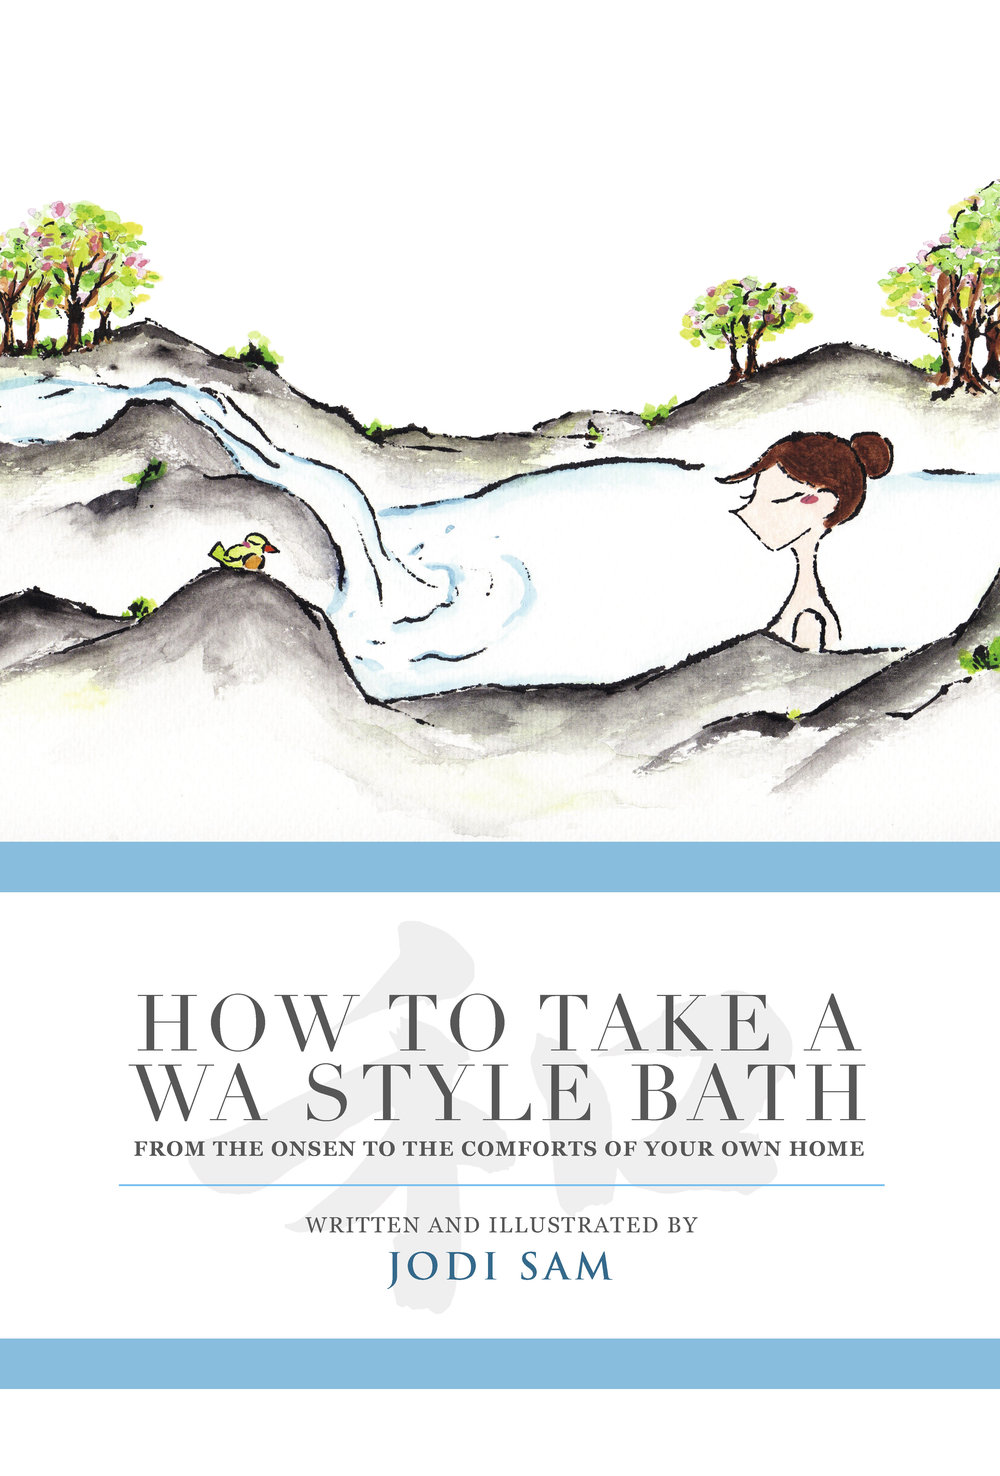 how to take a wa style bath by jodi sam_cover.jpeg